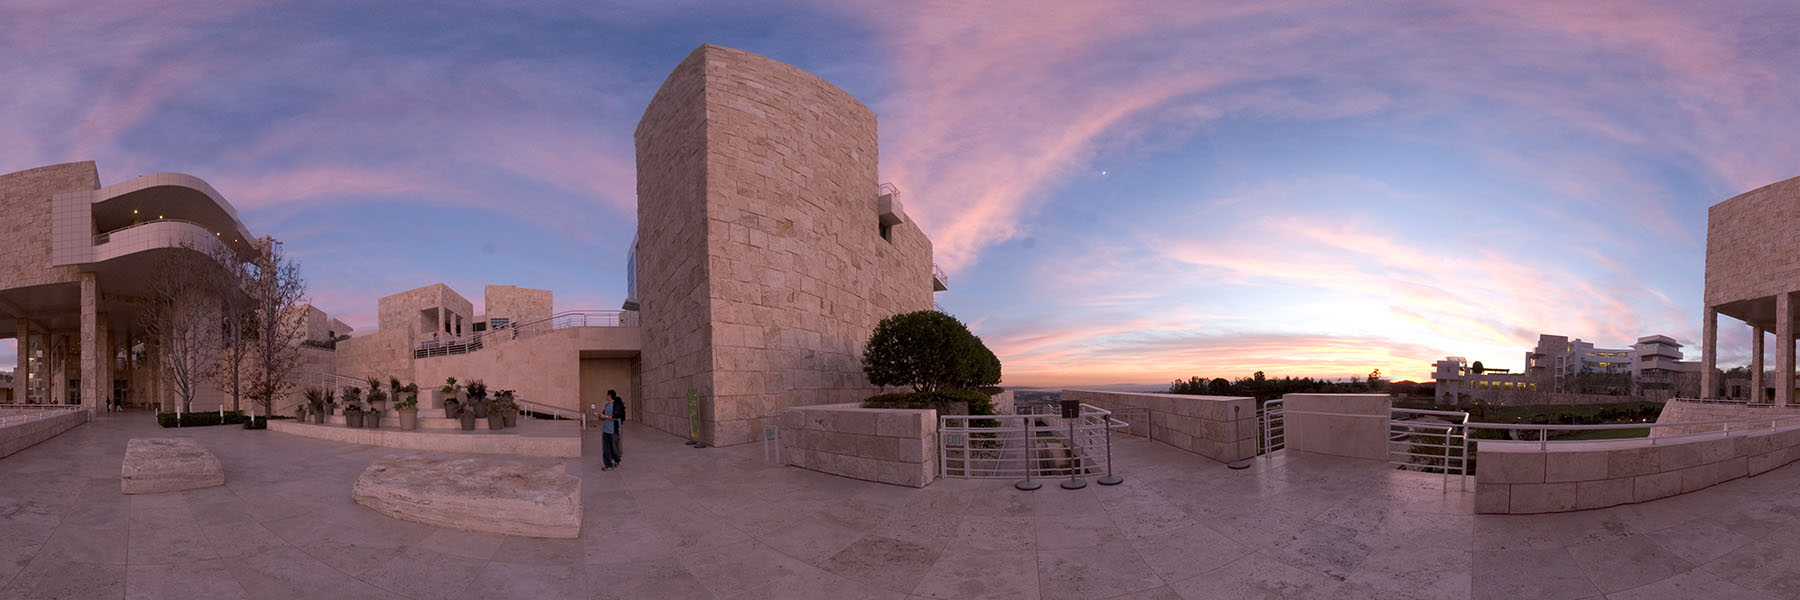 The Getty Center at dusk - From Wikipedia